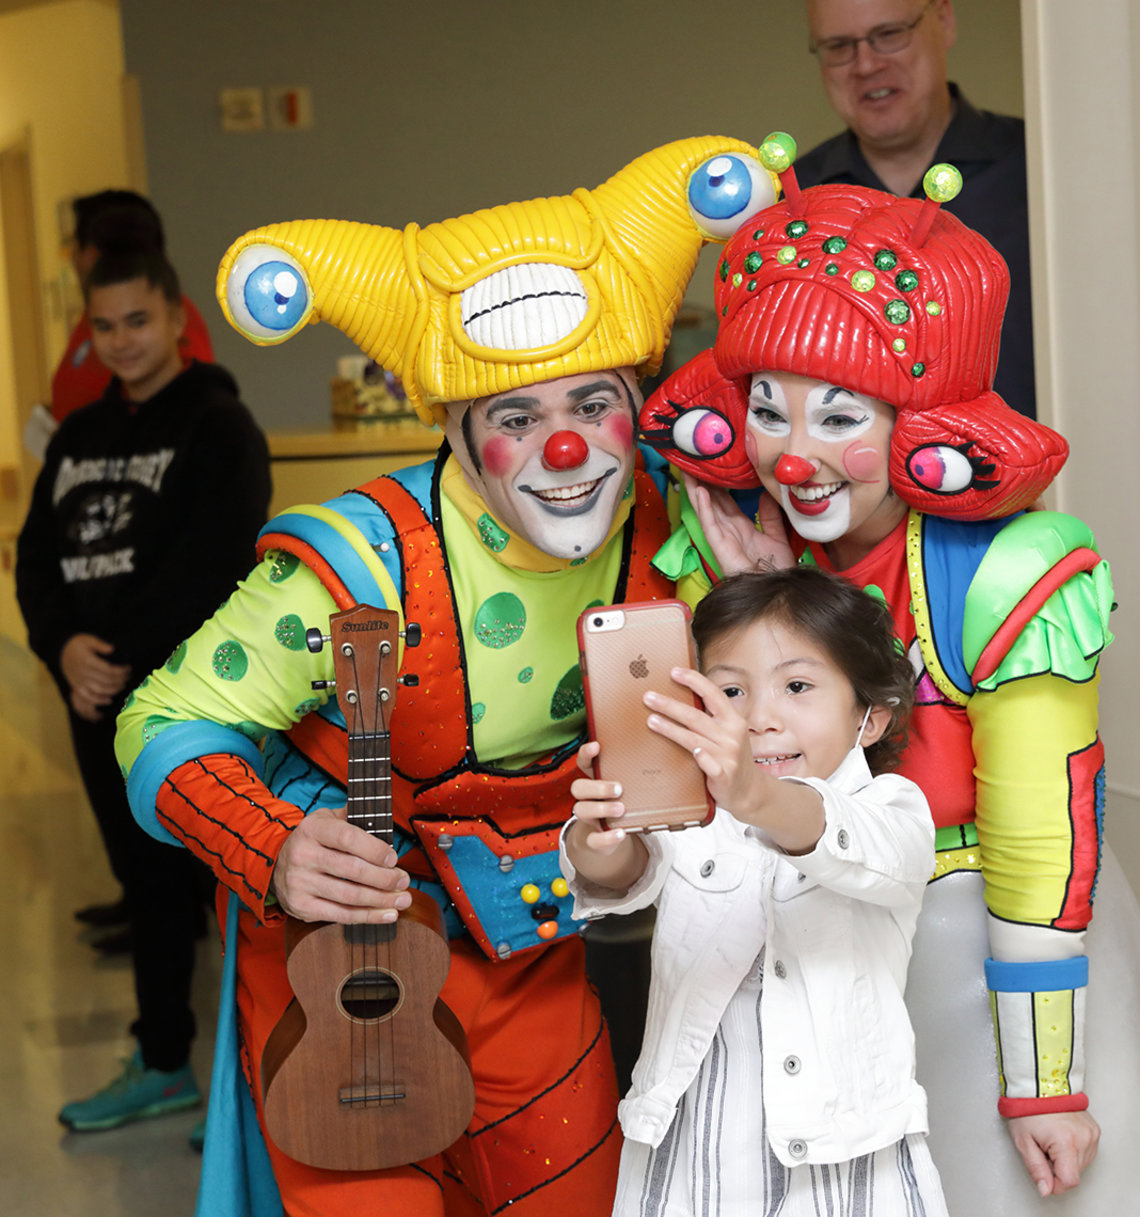 Young girl takes a selfie with circus clowns.